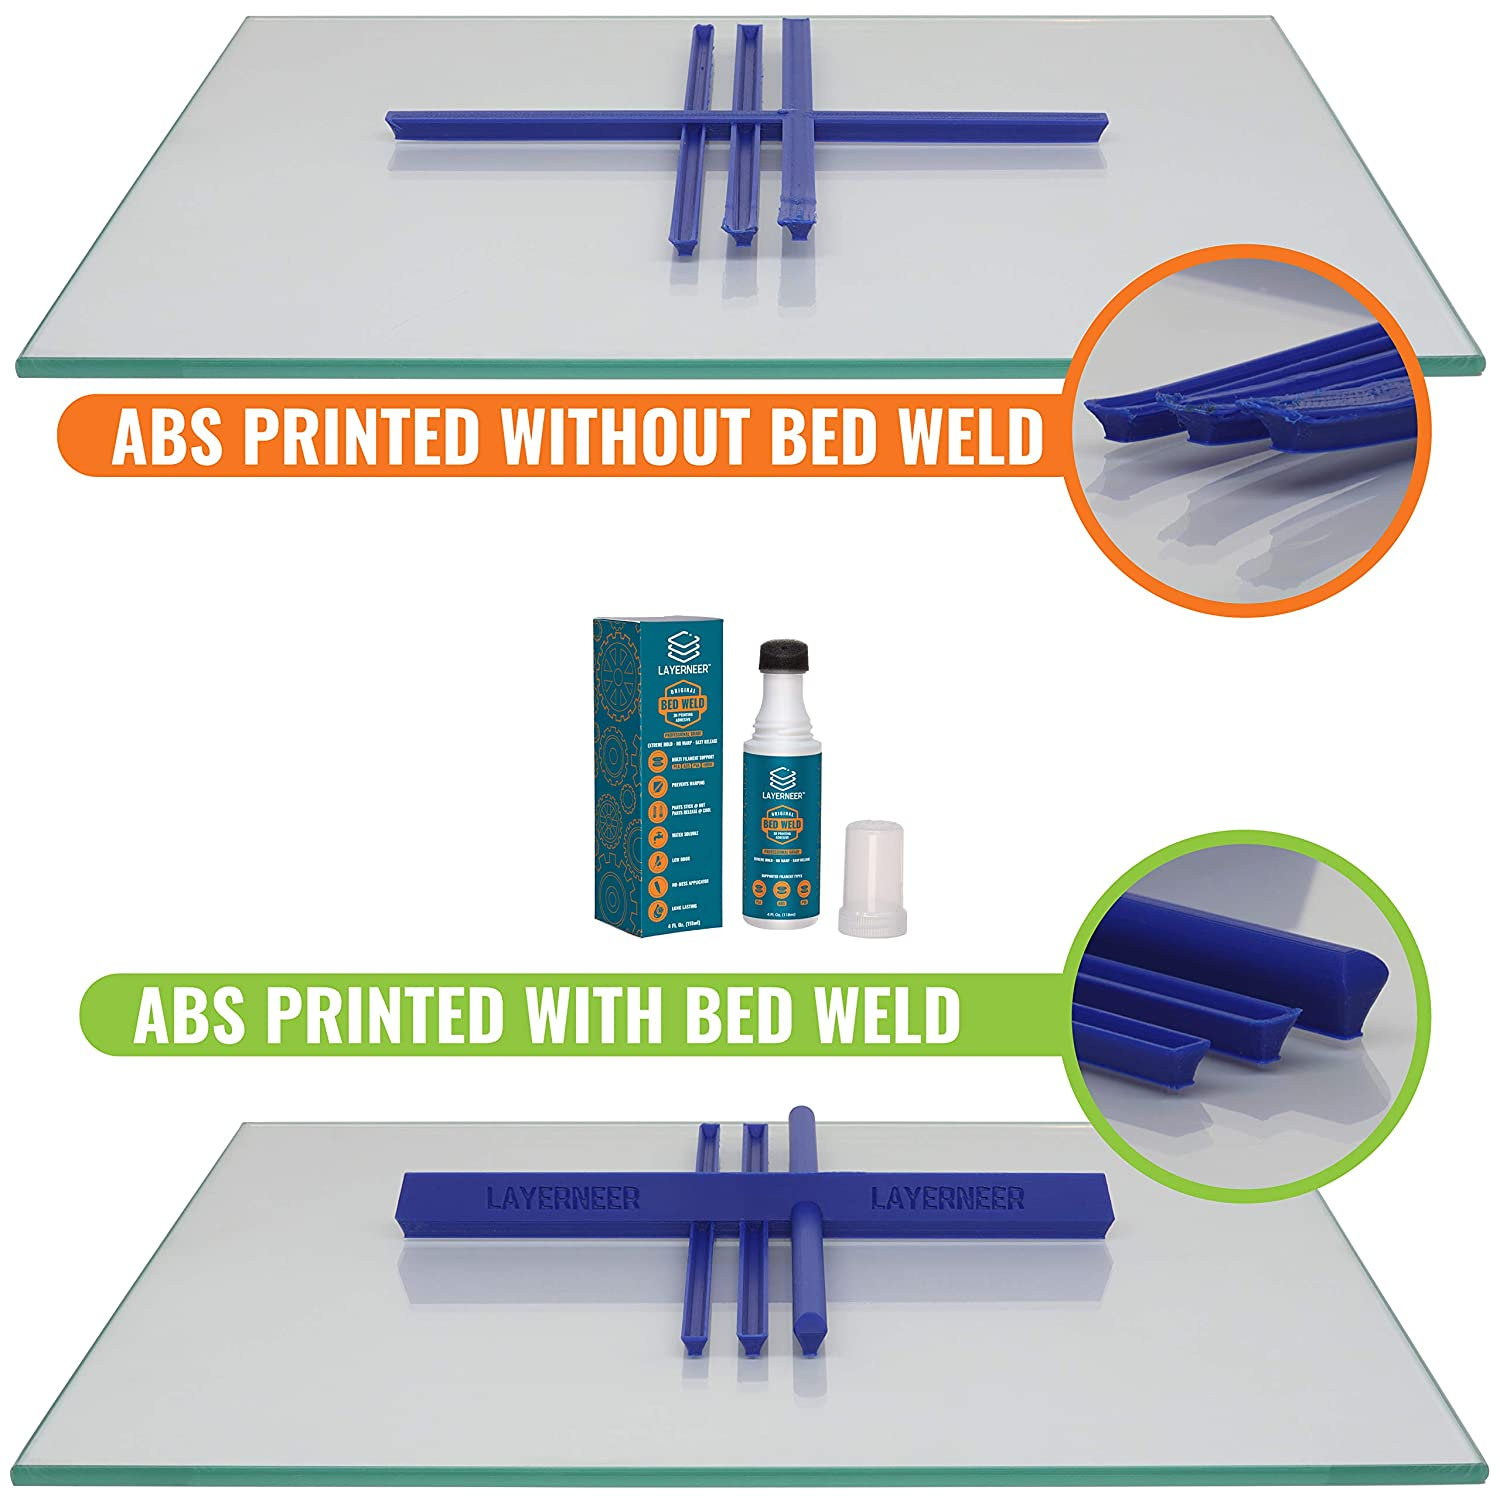 amazon com: 3d printer adhesive glue by layerneer, bed weld original,  strong grip reduces warping for abs, pla, and petg filament on heated build  plates,